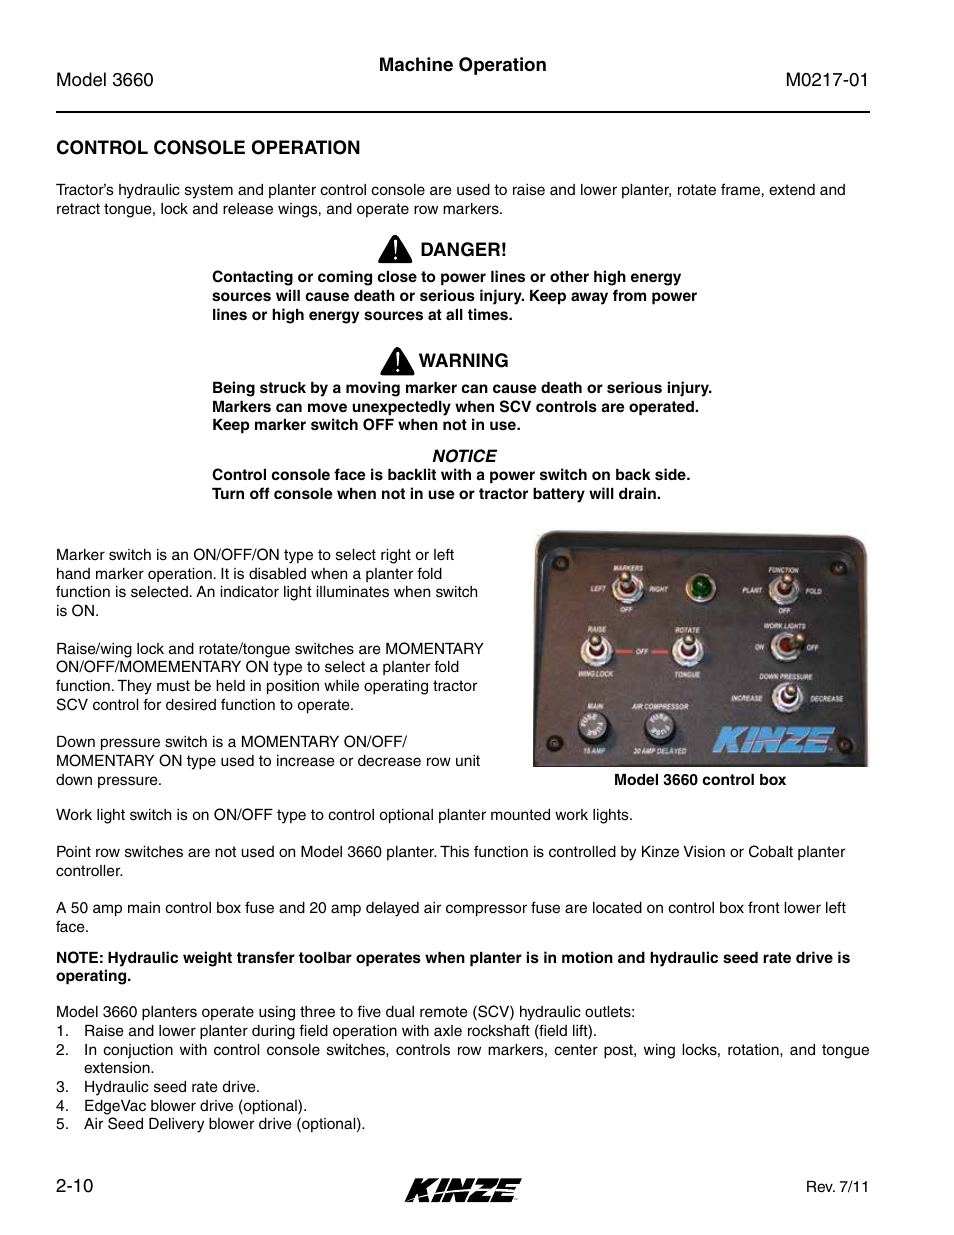 Control Console Operation 10 Kinze Increasing Amps Fuse Box 3660 Lift And Rotate Planter Rev 7 14 User Manual Page 22 150